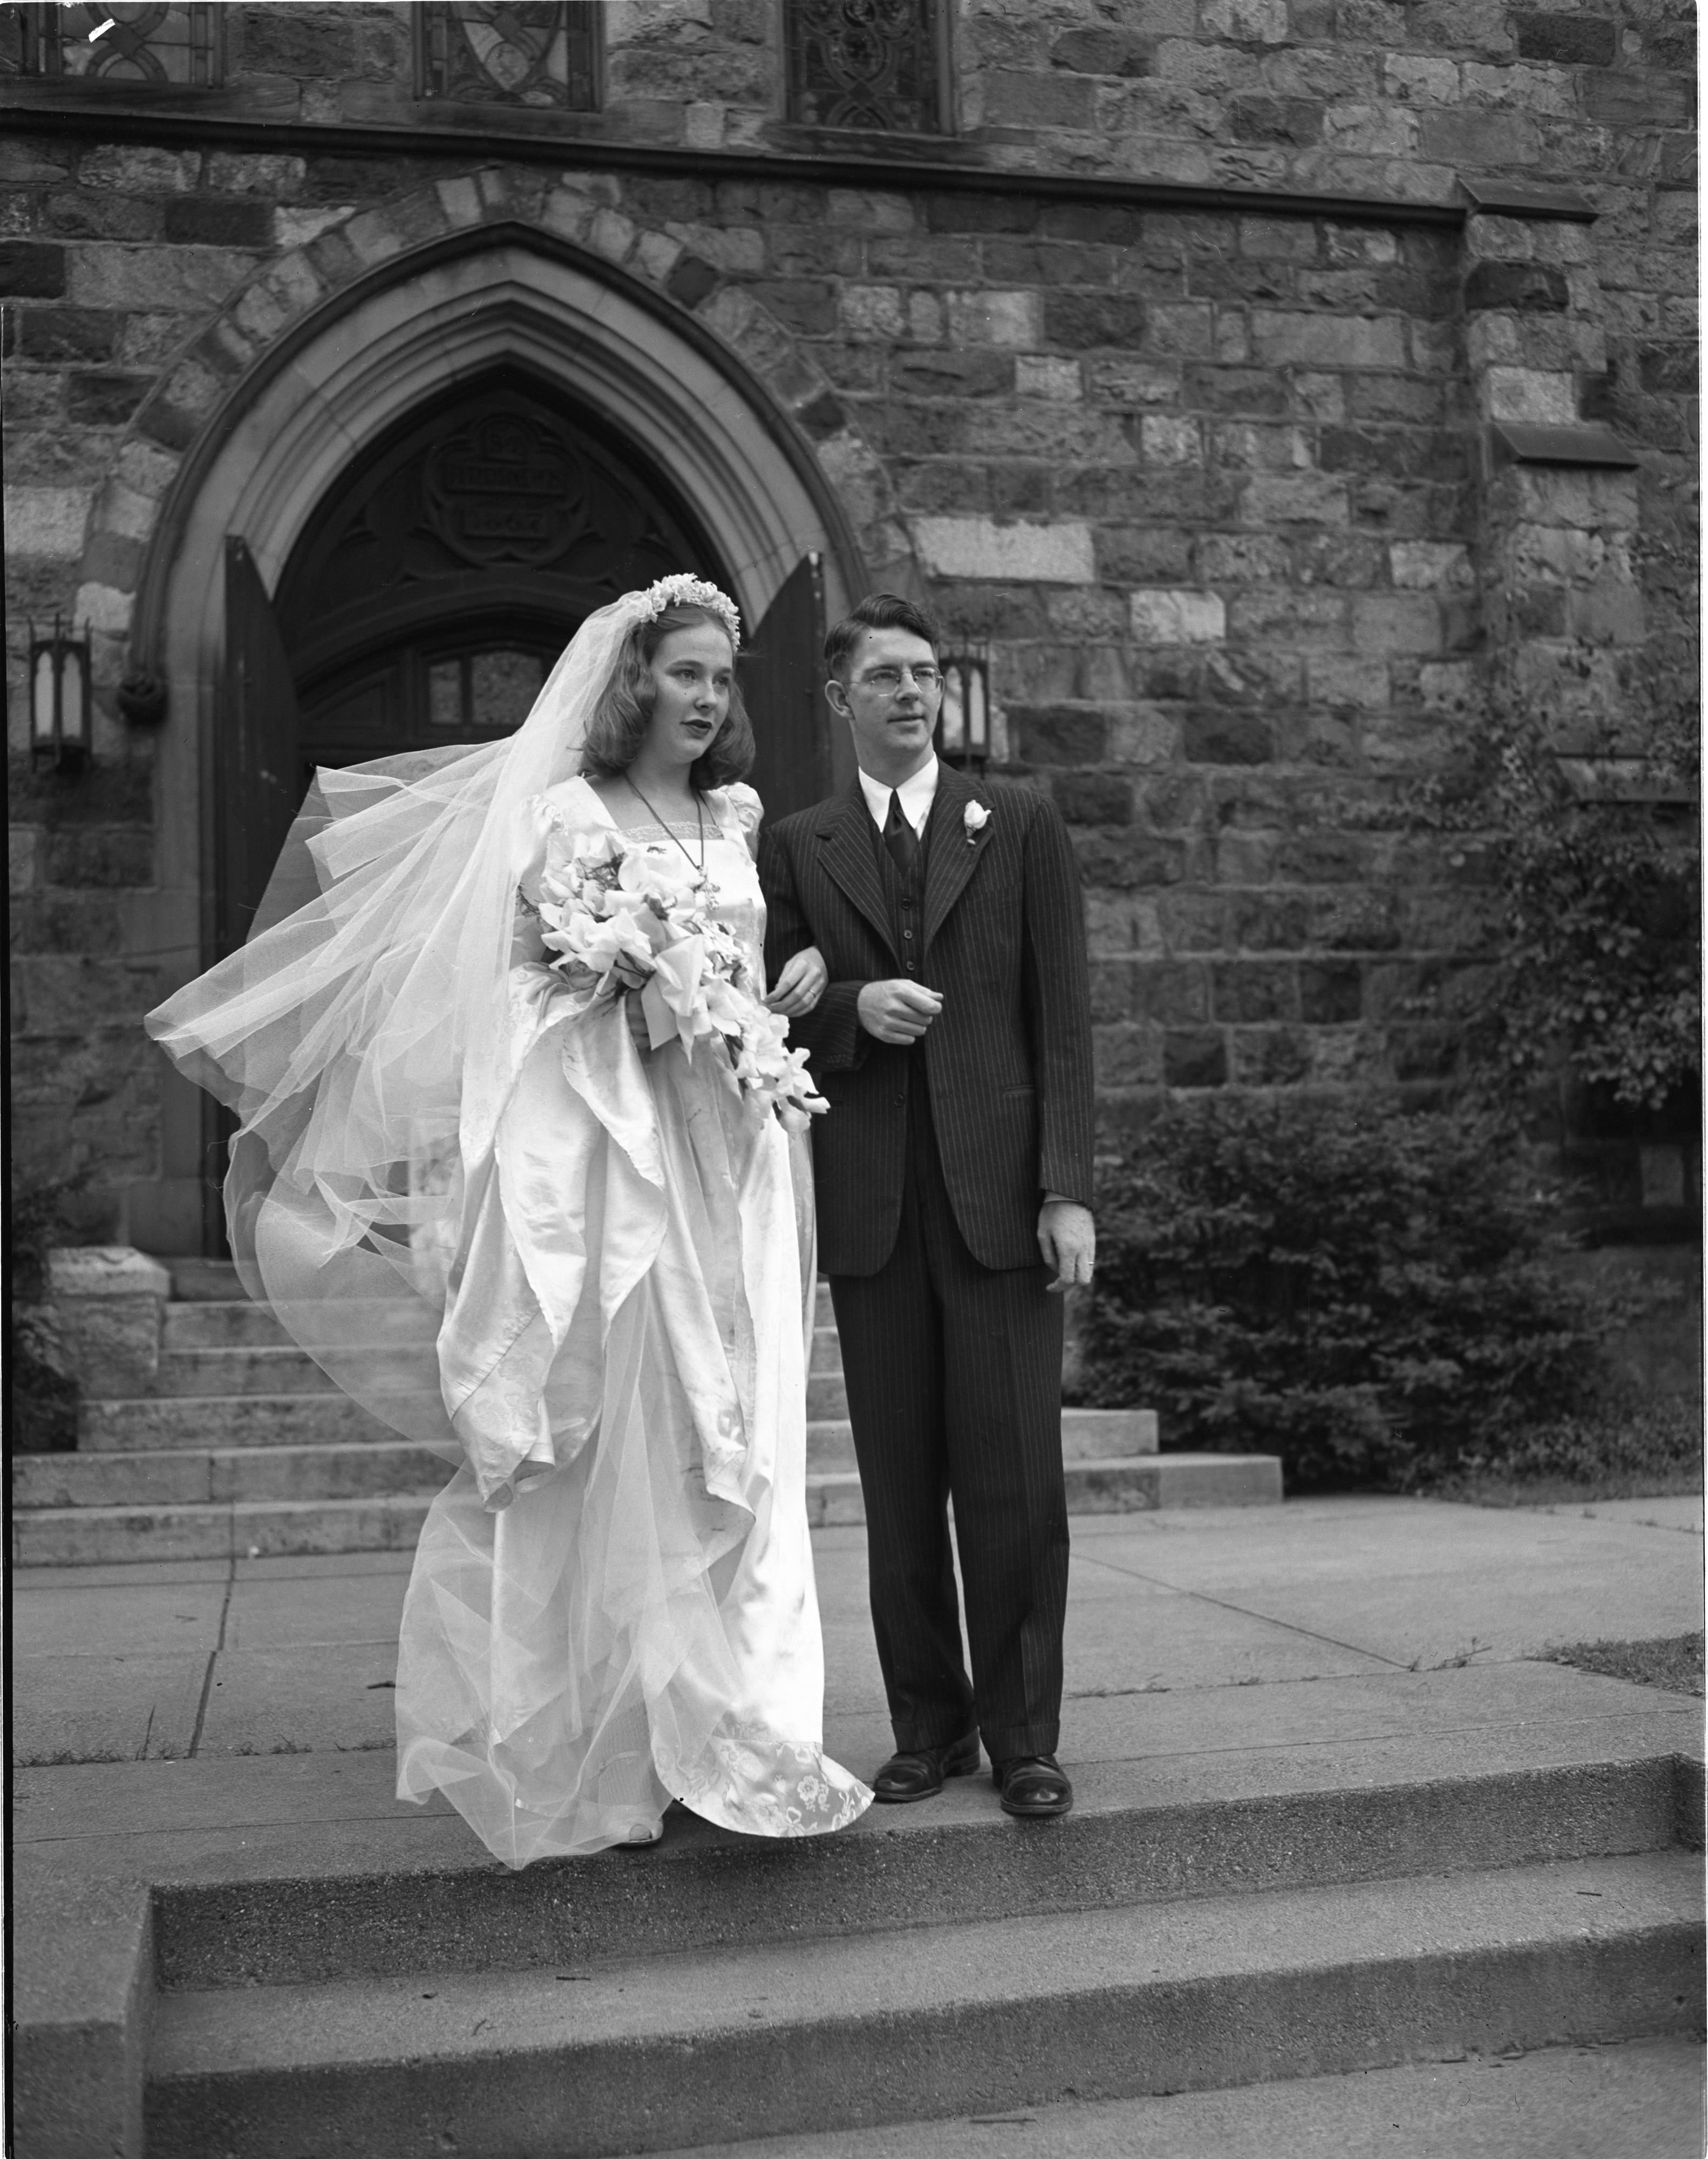 Mr. & Mrs. A. Worth Mallory Outside St. Andrew's After Their Wedding - August 30, 1946 image